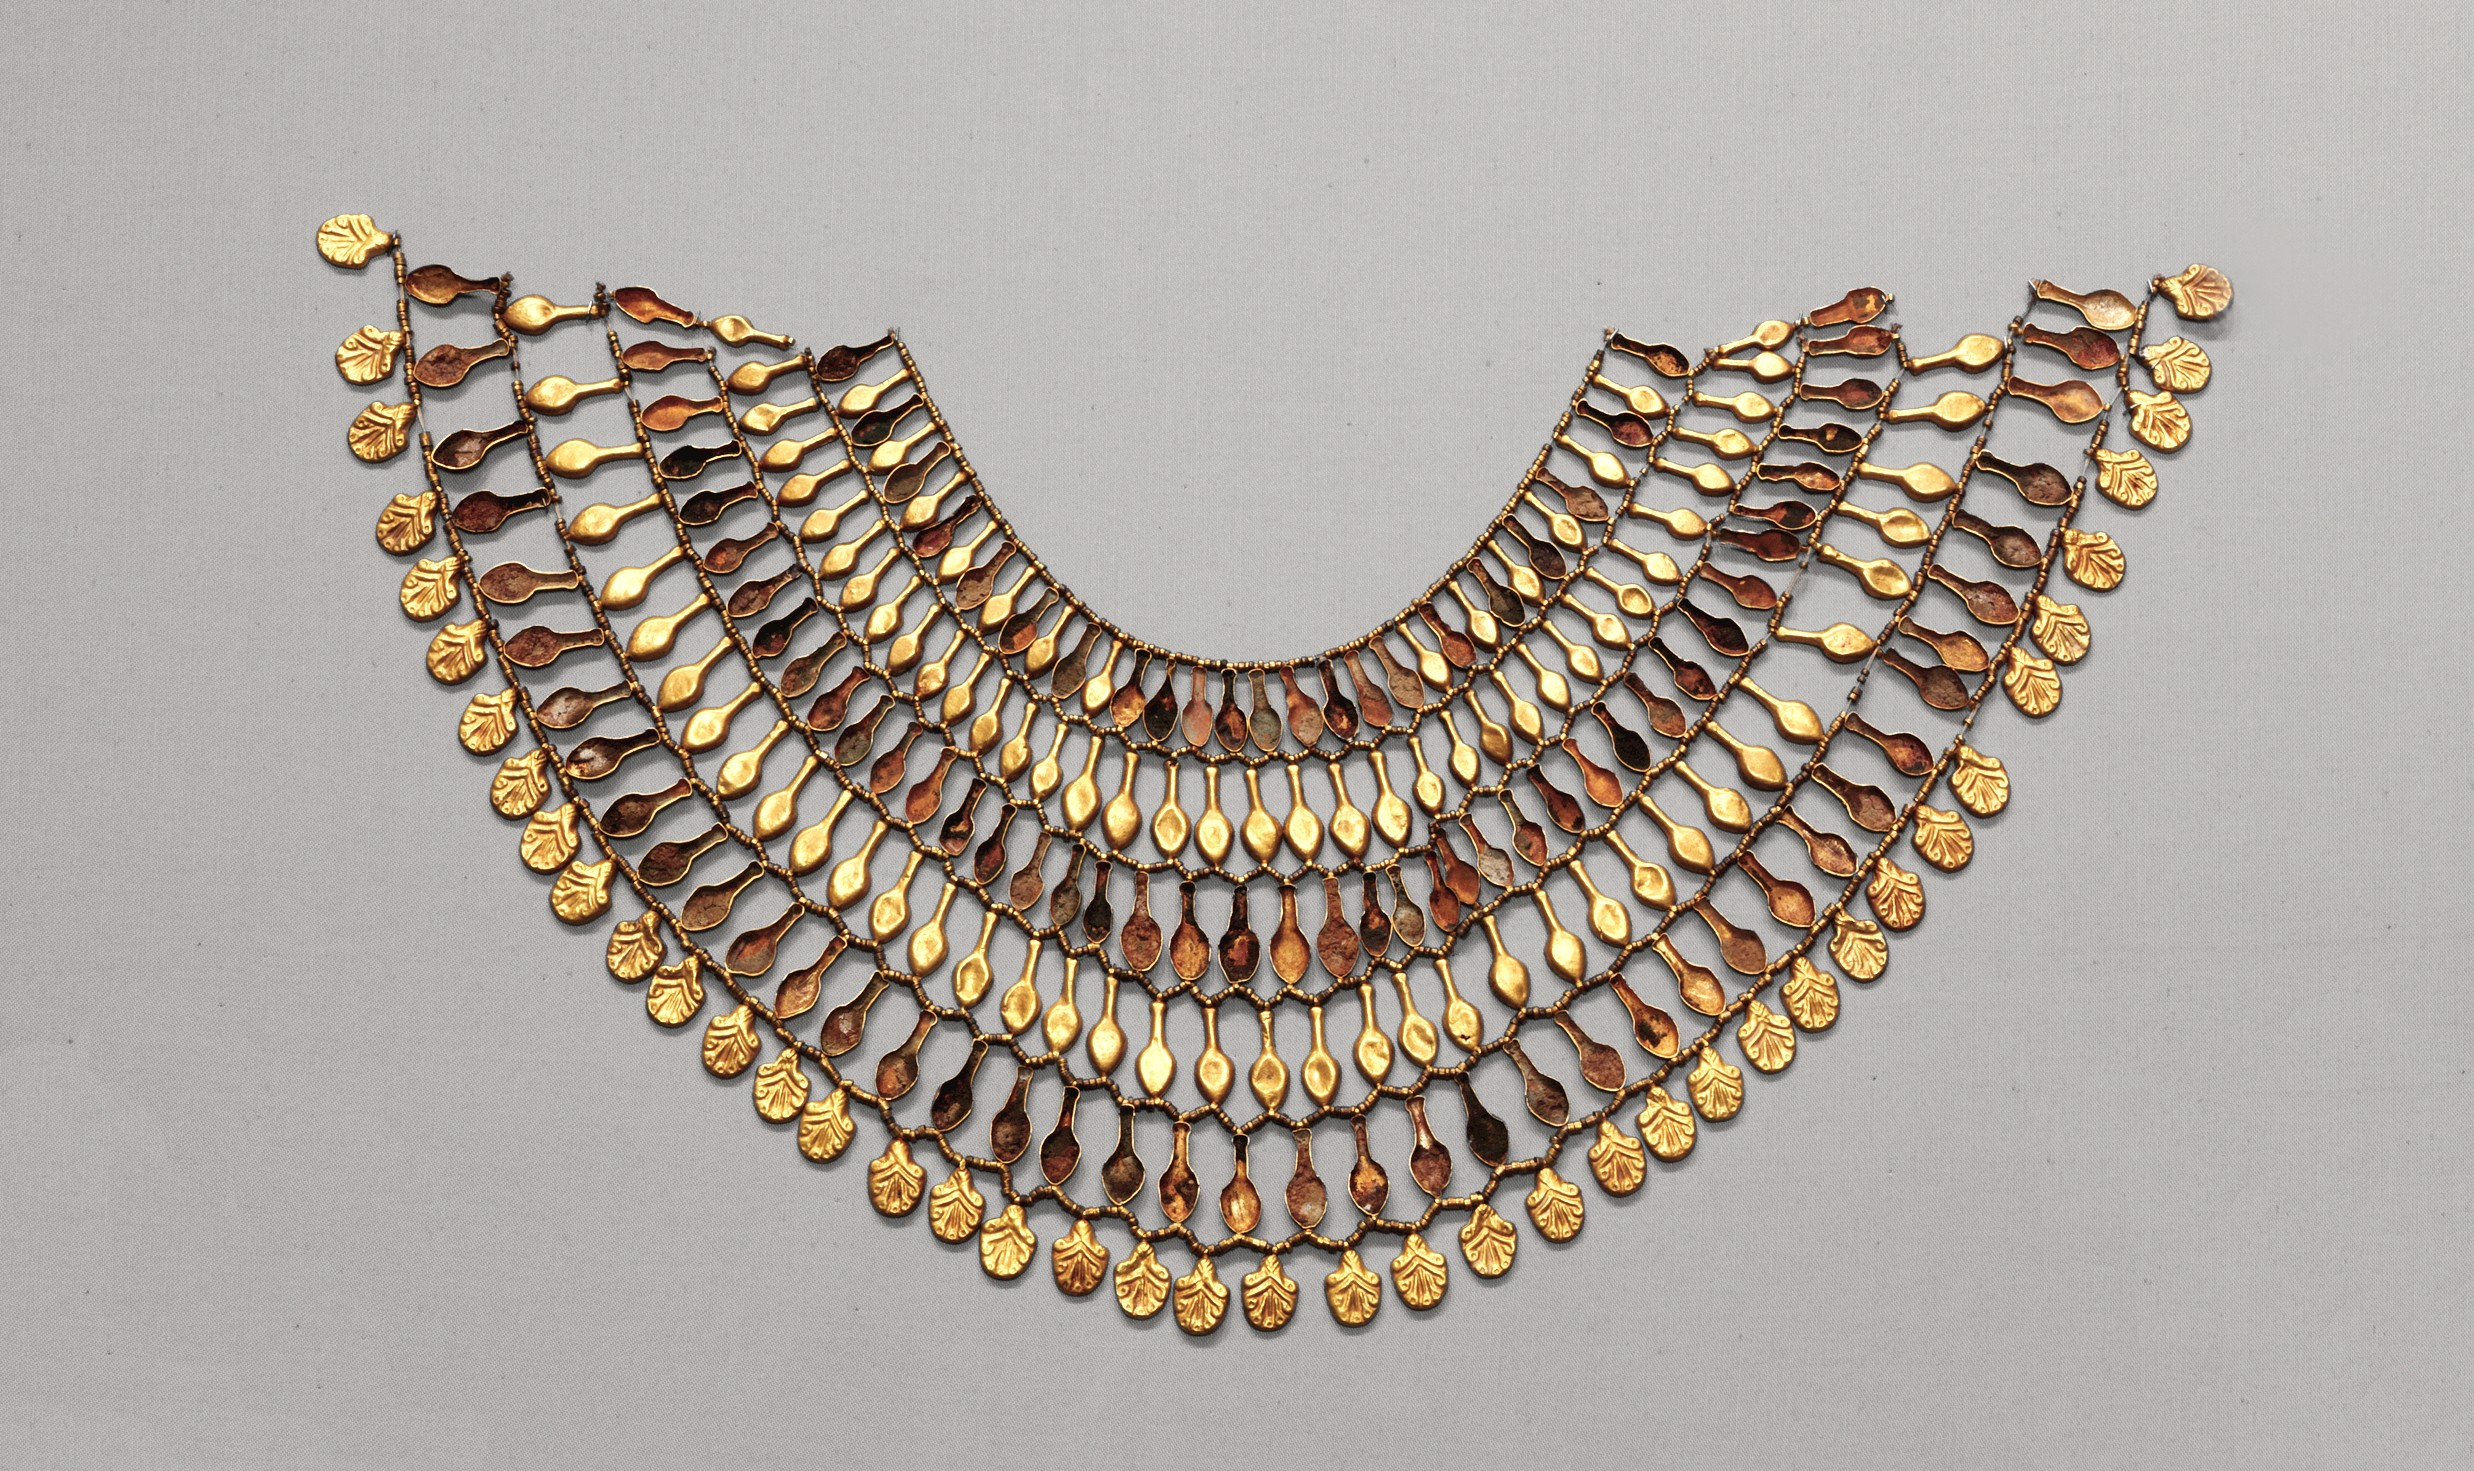 Egyptian Jewelry A Window Into Ancient Culture